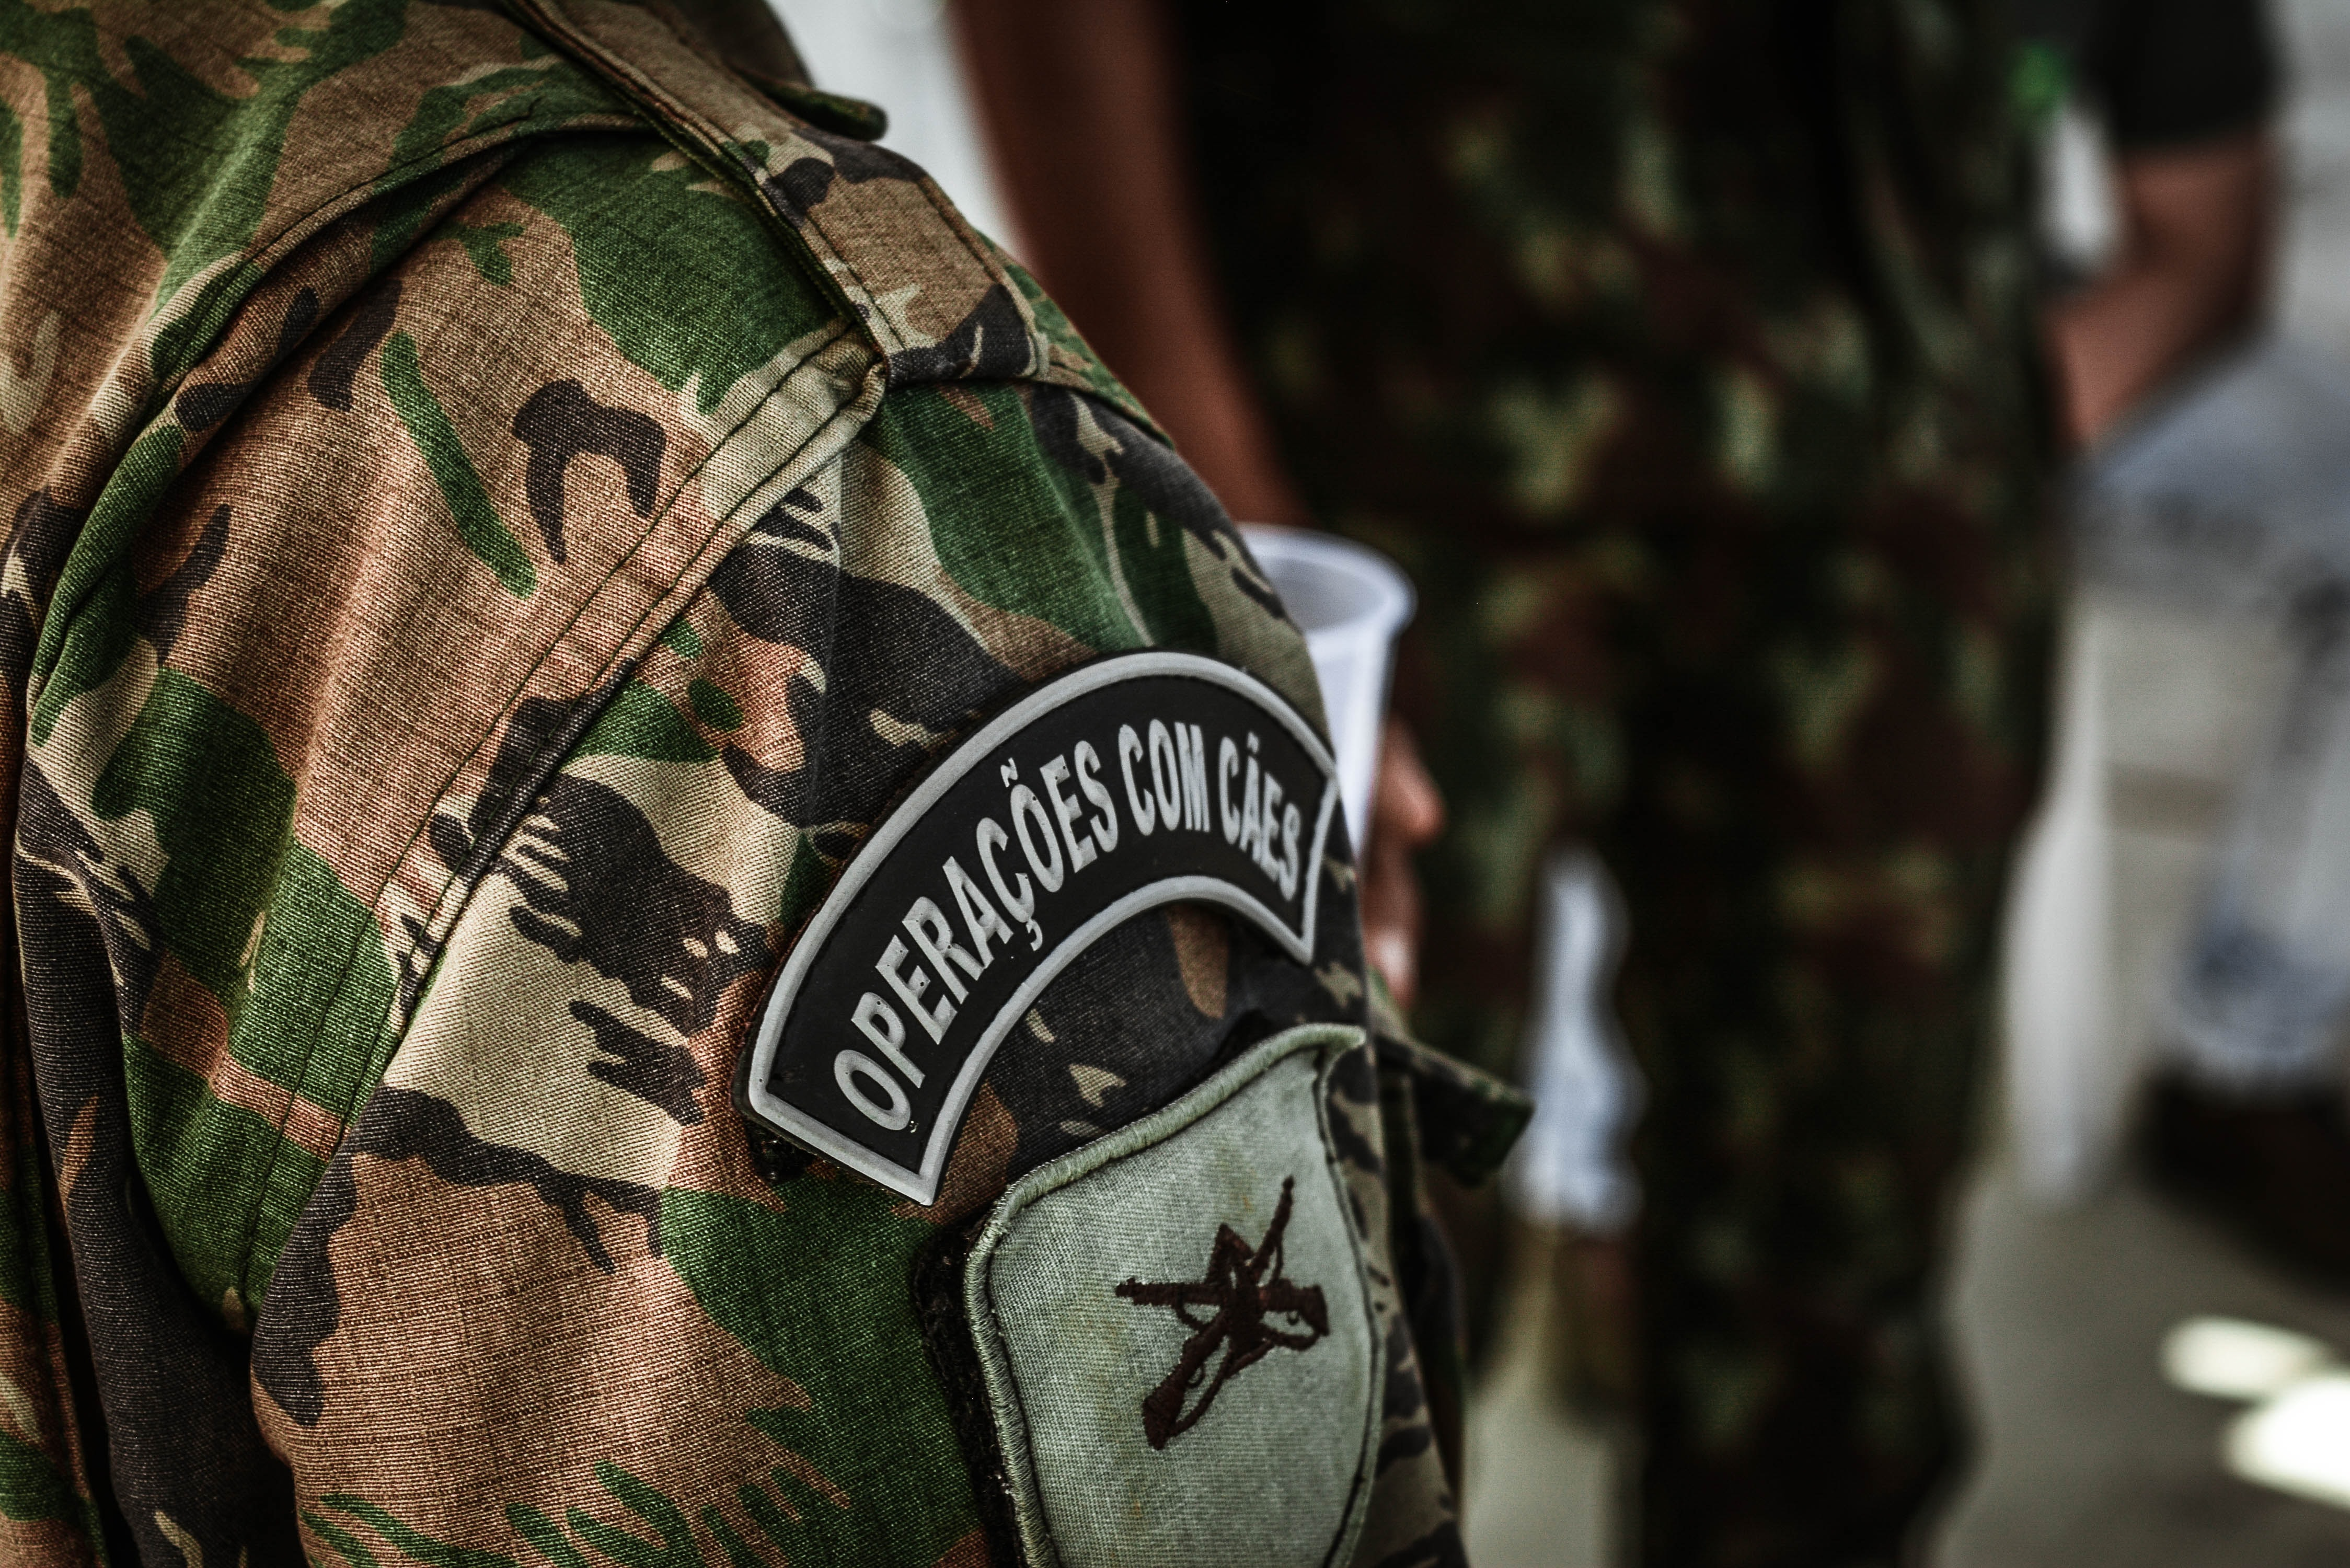 closeup photo of brown and green camouflage top